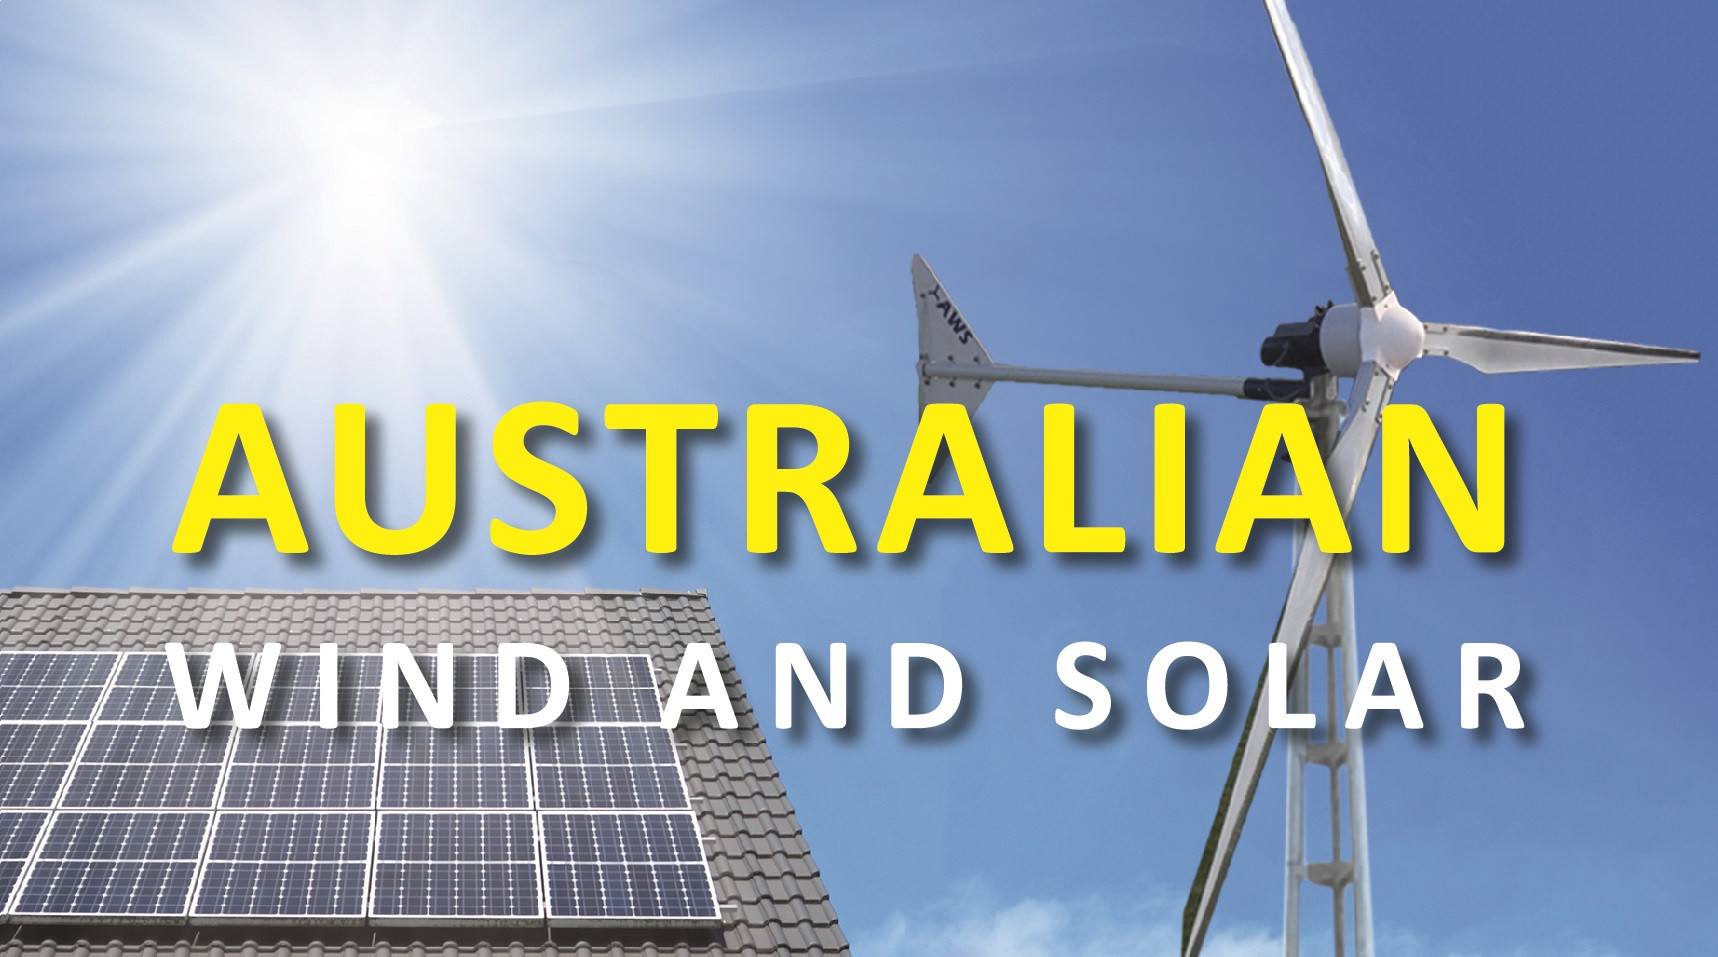 Australian Wind and Solar| Wind Turbines| Buy Wind Turbines